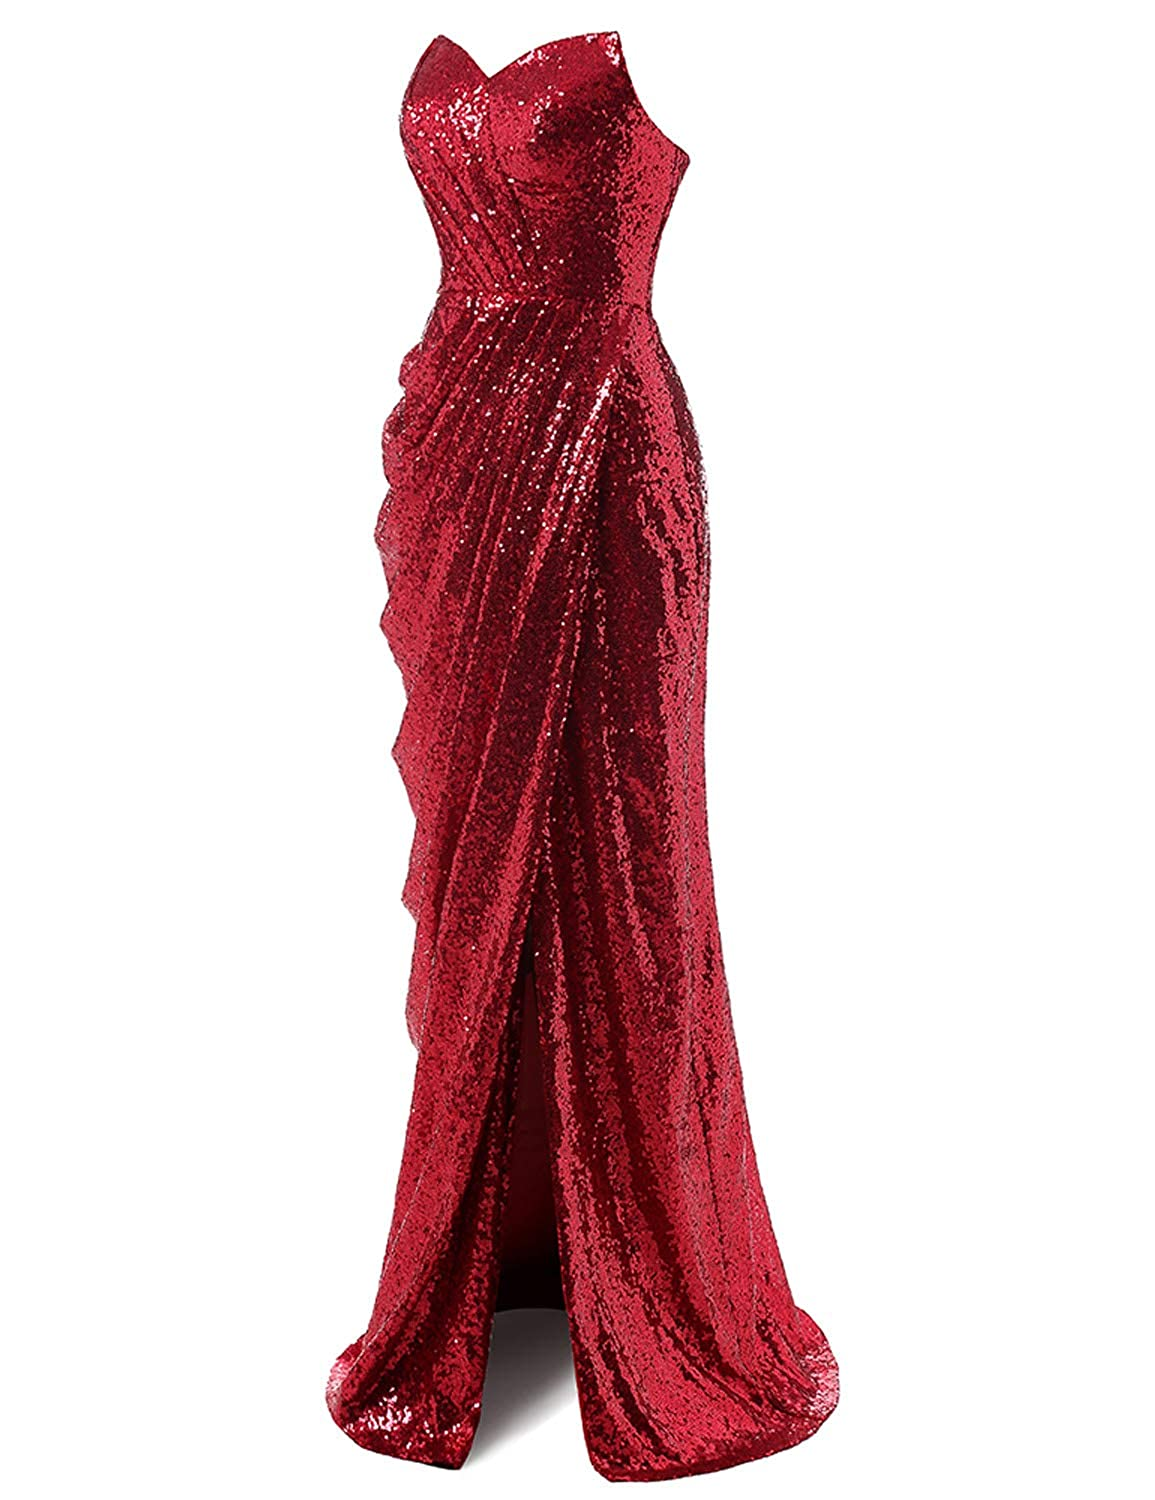 Light Burgundy CIRCLEWLD Sweetheart Ruched Sequin Gown with Side Slit Long Prom Evening Dresses Bridesmaid Dress E195